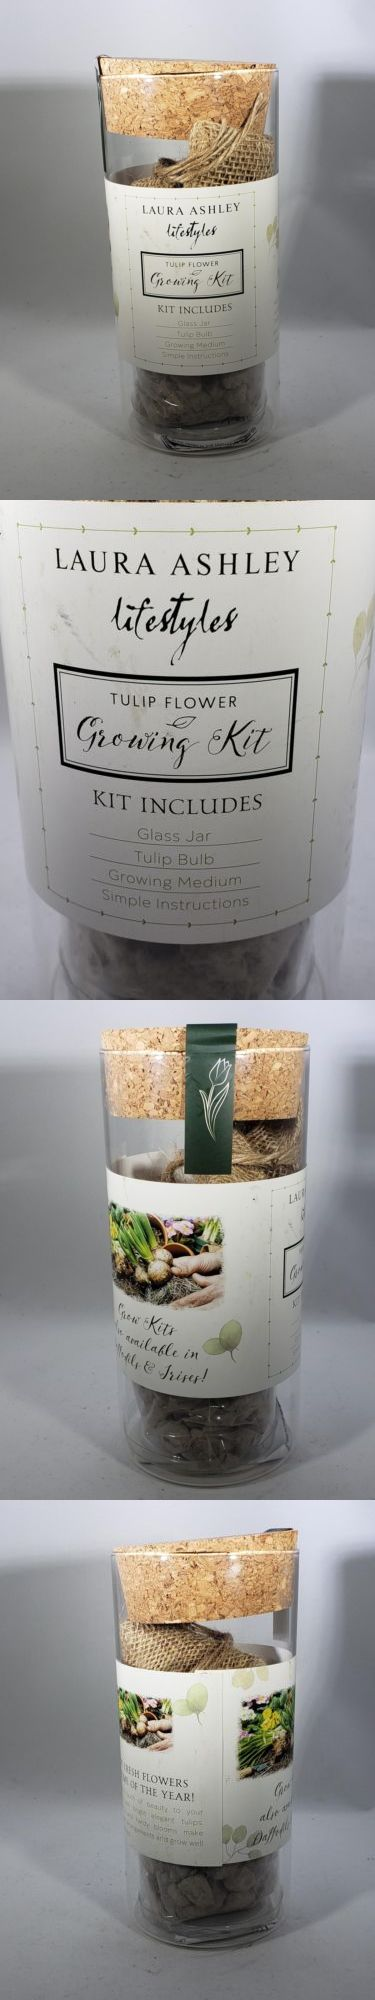 Other Plants Seeds And Bulbs 181052 Laura Ashley Lifestyles Tulip Flower Growing Kit In Glass Jar Buy It Now Only Jars For Sale Glass Jars Tulips Flowers